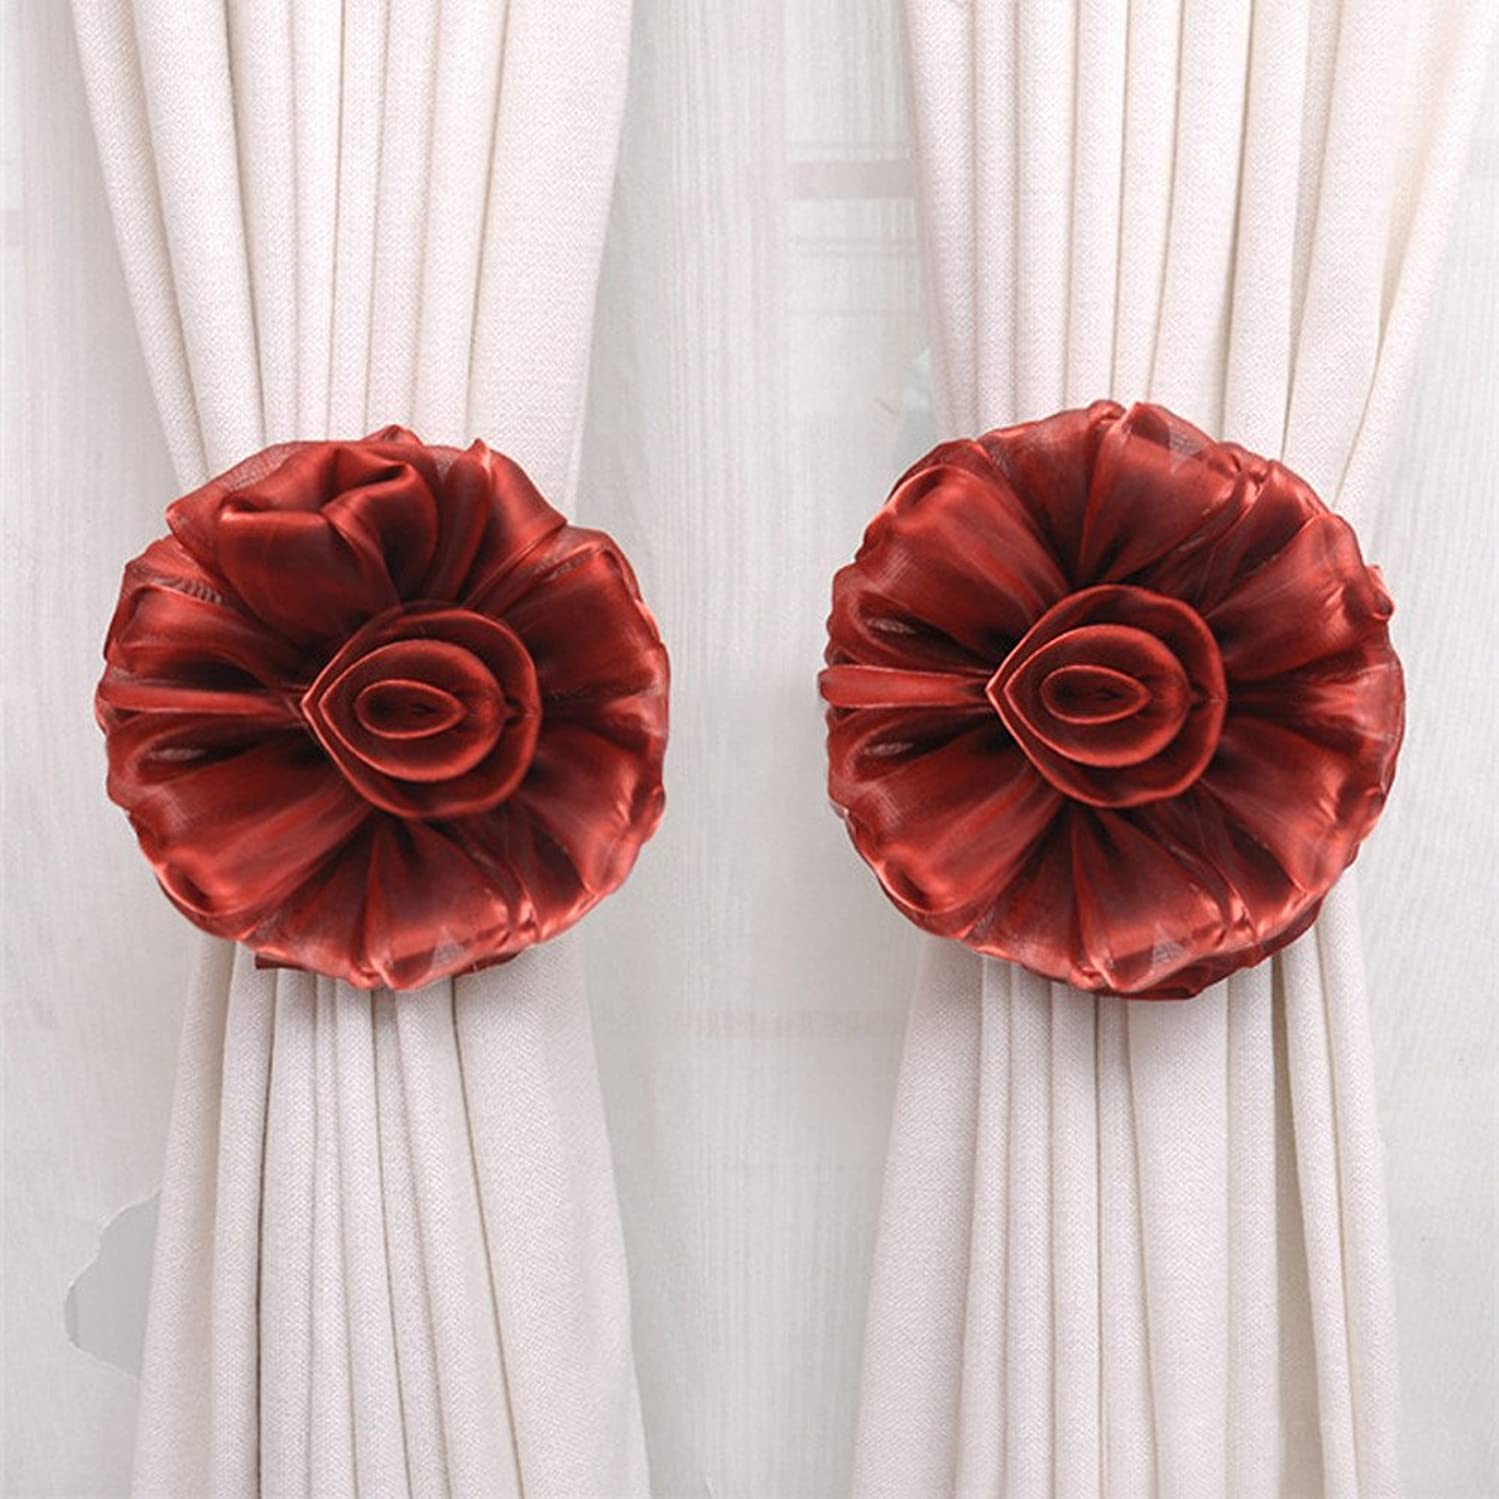 Quaanti Clip-On Flower Tie Backs Flower Curtain Holdback for Voile & Net Curtain Panels, Curtain Tiebacks Holders Shower Curtain Hooks Holdback for Decoration (Wine) ufkt569044641